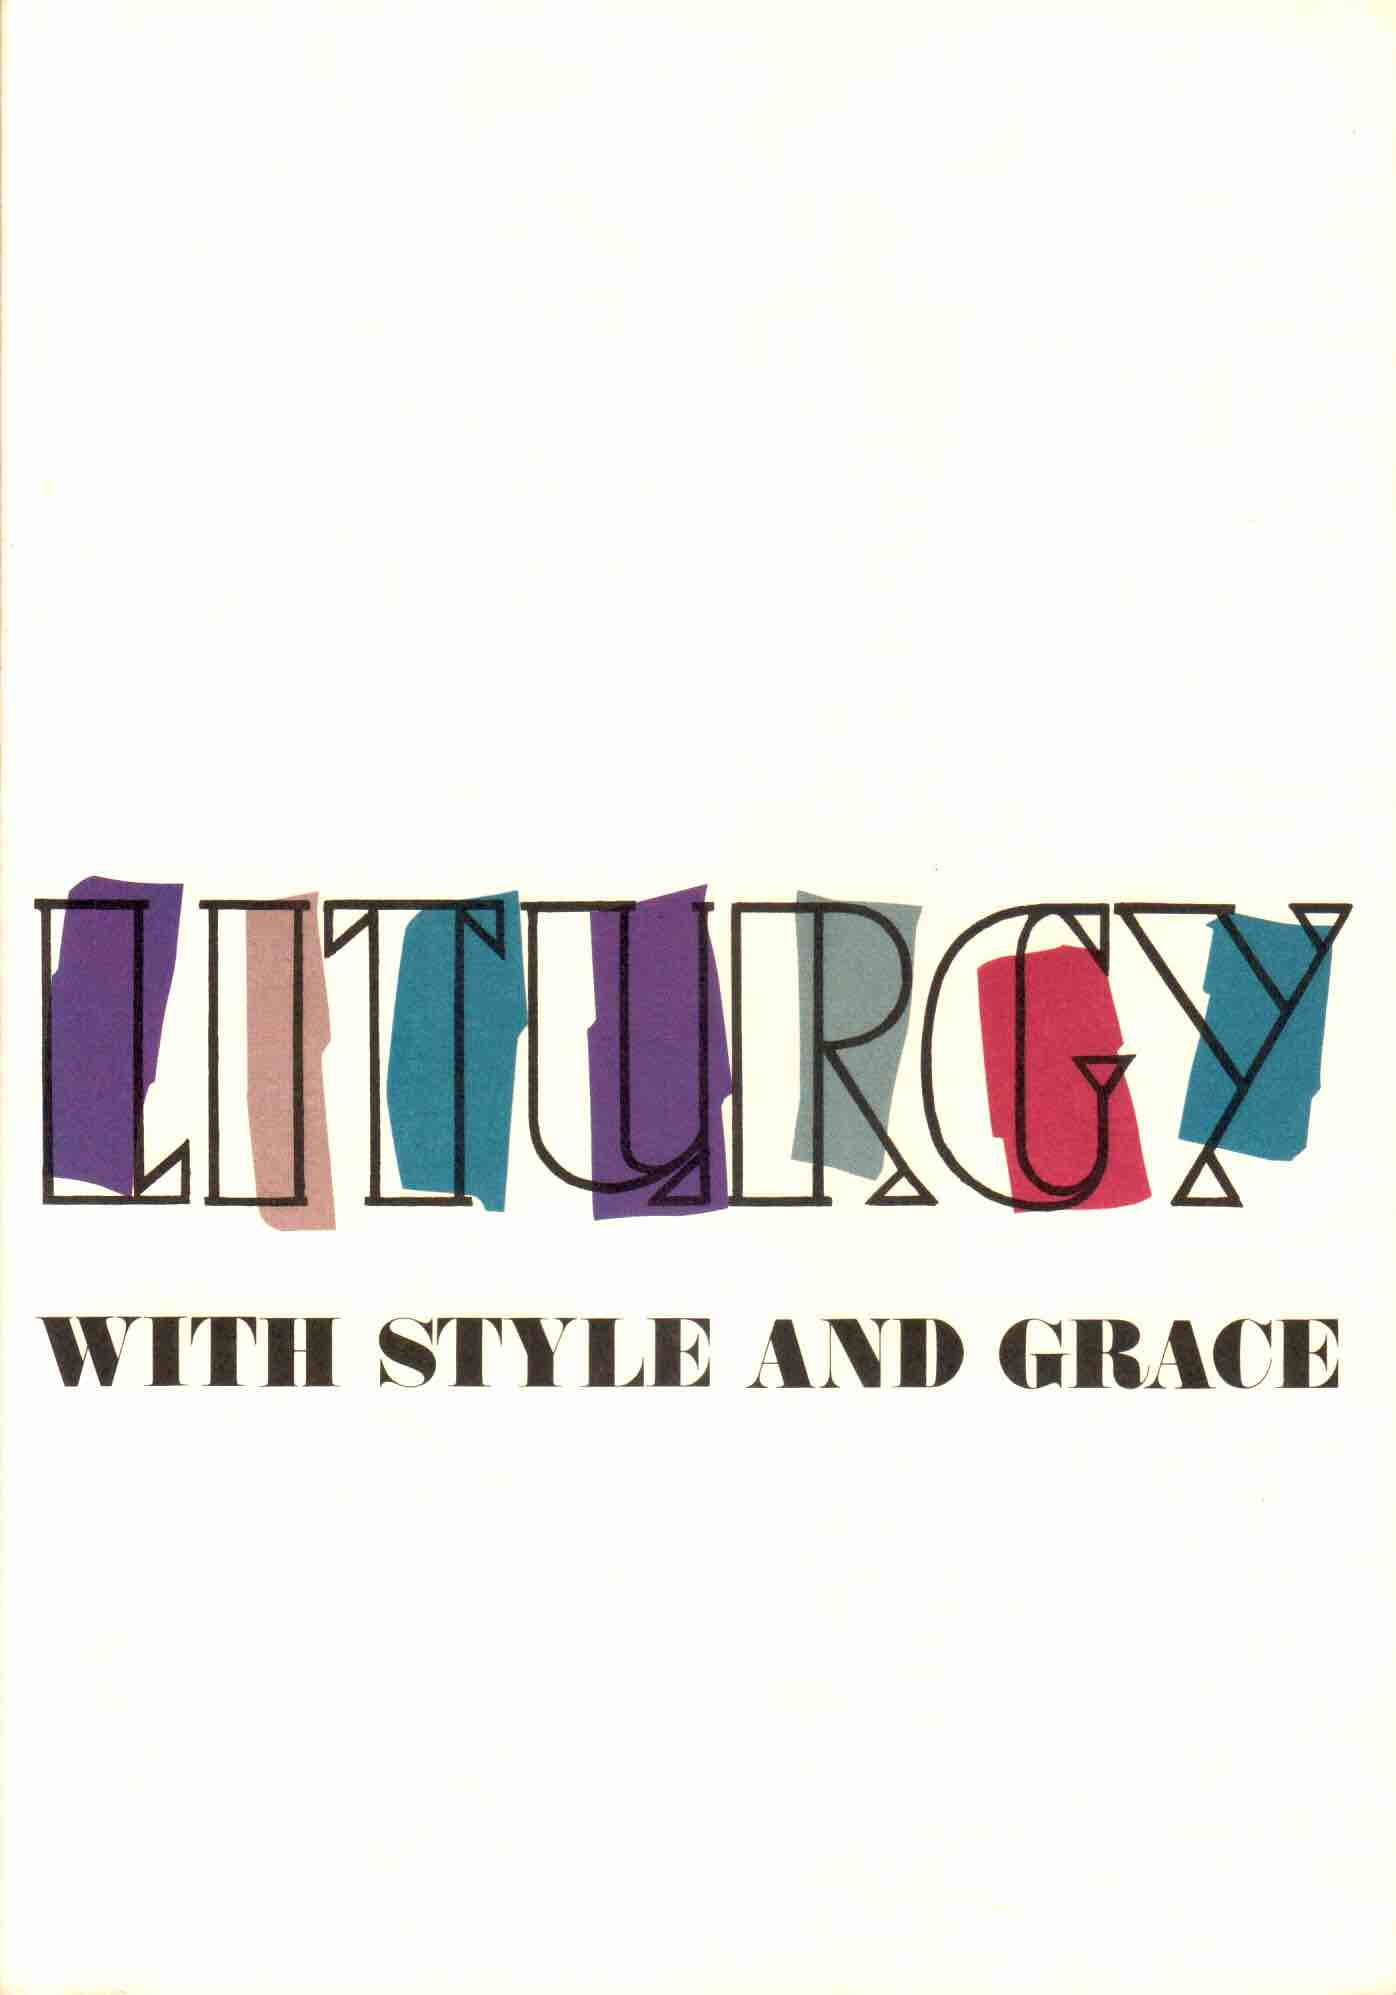 Liturgy with Style and Grace